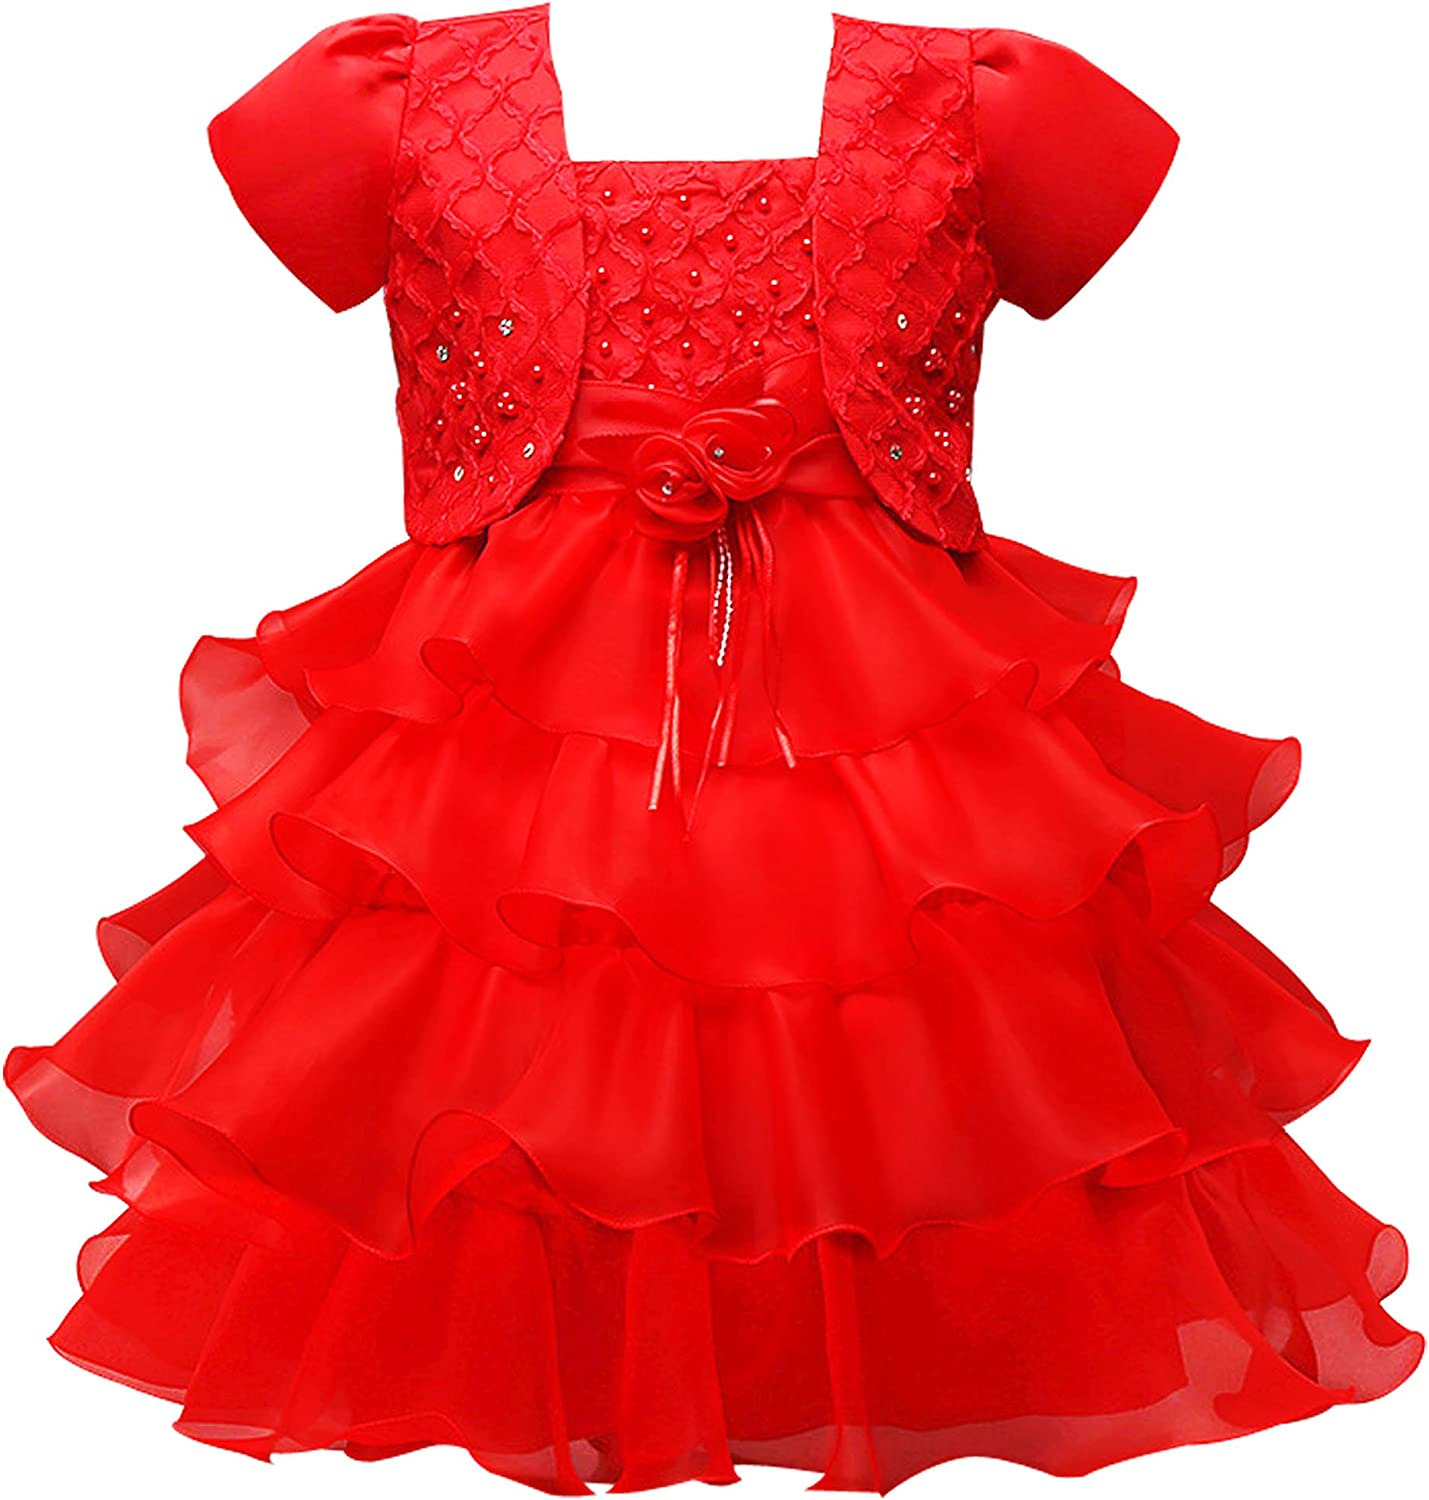 CHENLVXIE Direct service store Short Sleeve Tutu Ball Gown Flower Zipper Jacket with